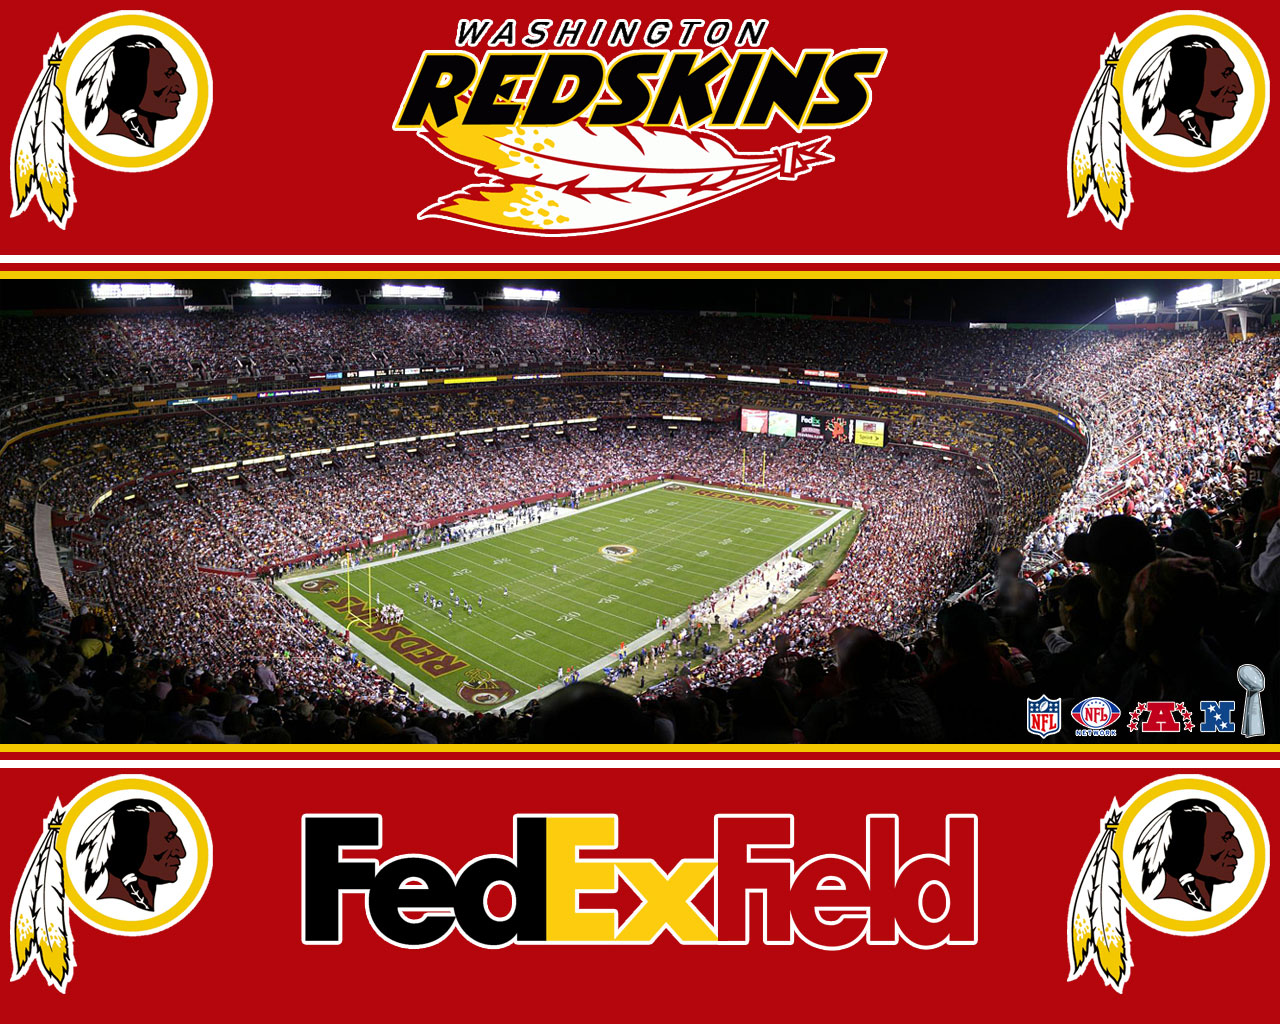 http://2.bp.blogspot.com/_SPY5-z18DBU/TT4PmaEMOMI/AAAAAAAAAuU/OAPZeANm3AU/s1600/washington_redskins_stadium_wallpaper_1280x1024.jpeg